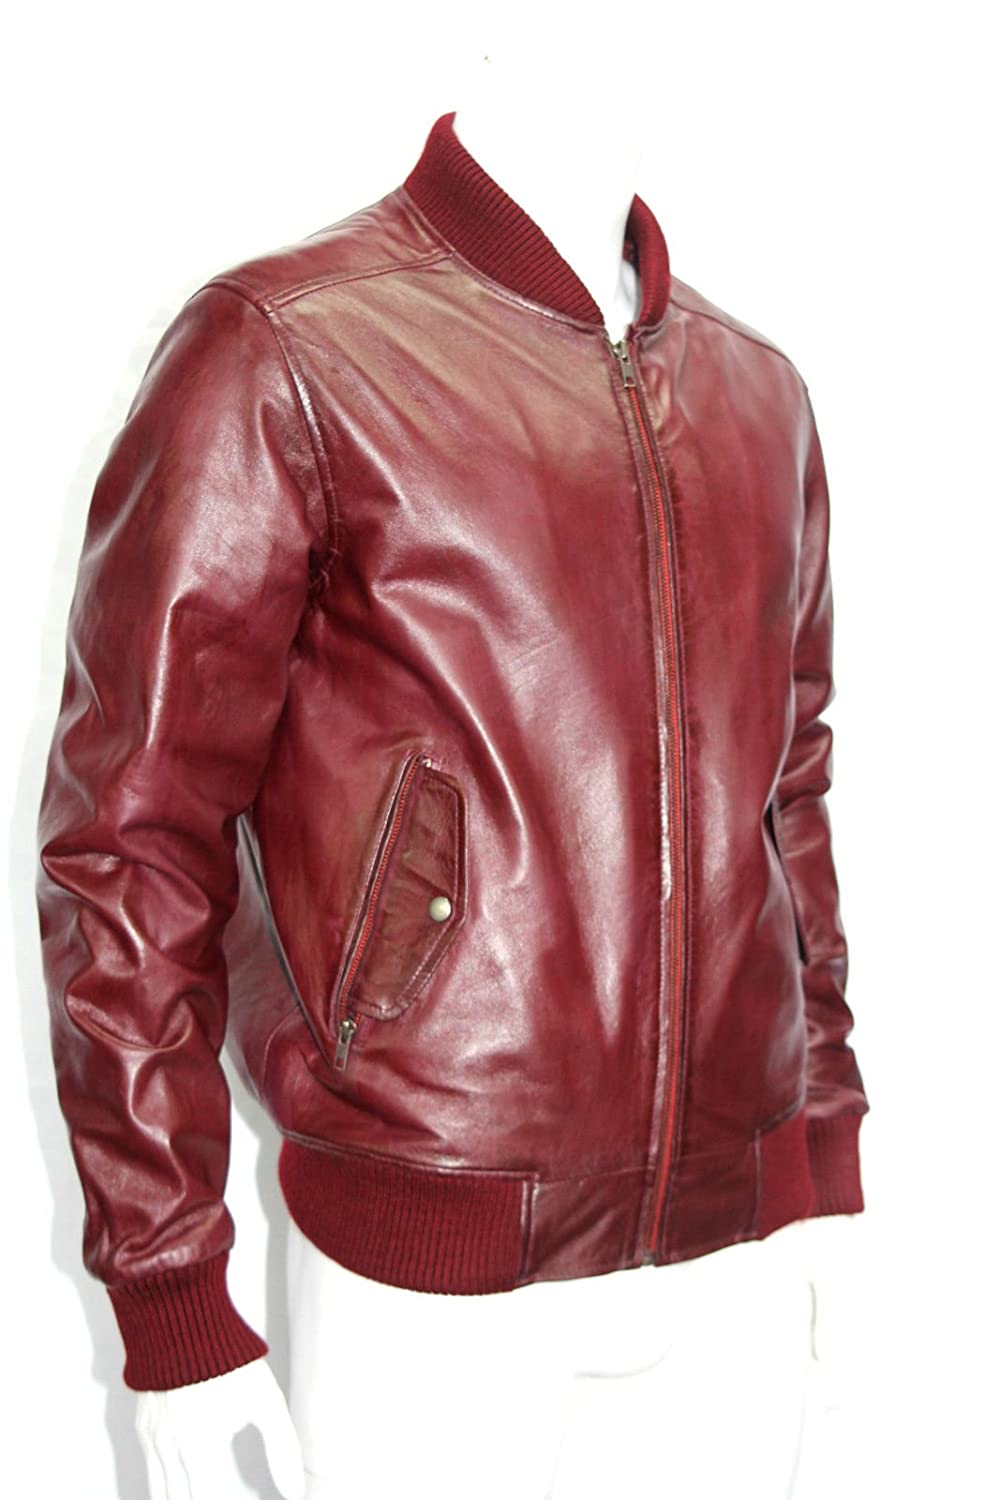 Man 70 S Retro Cherry Red Bomber Style Leather Jackets All Sizes